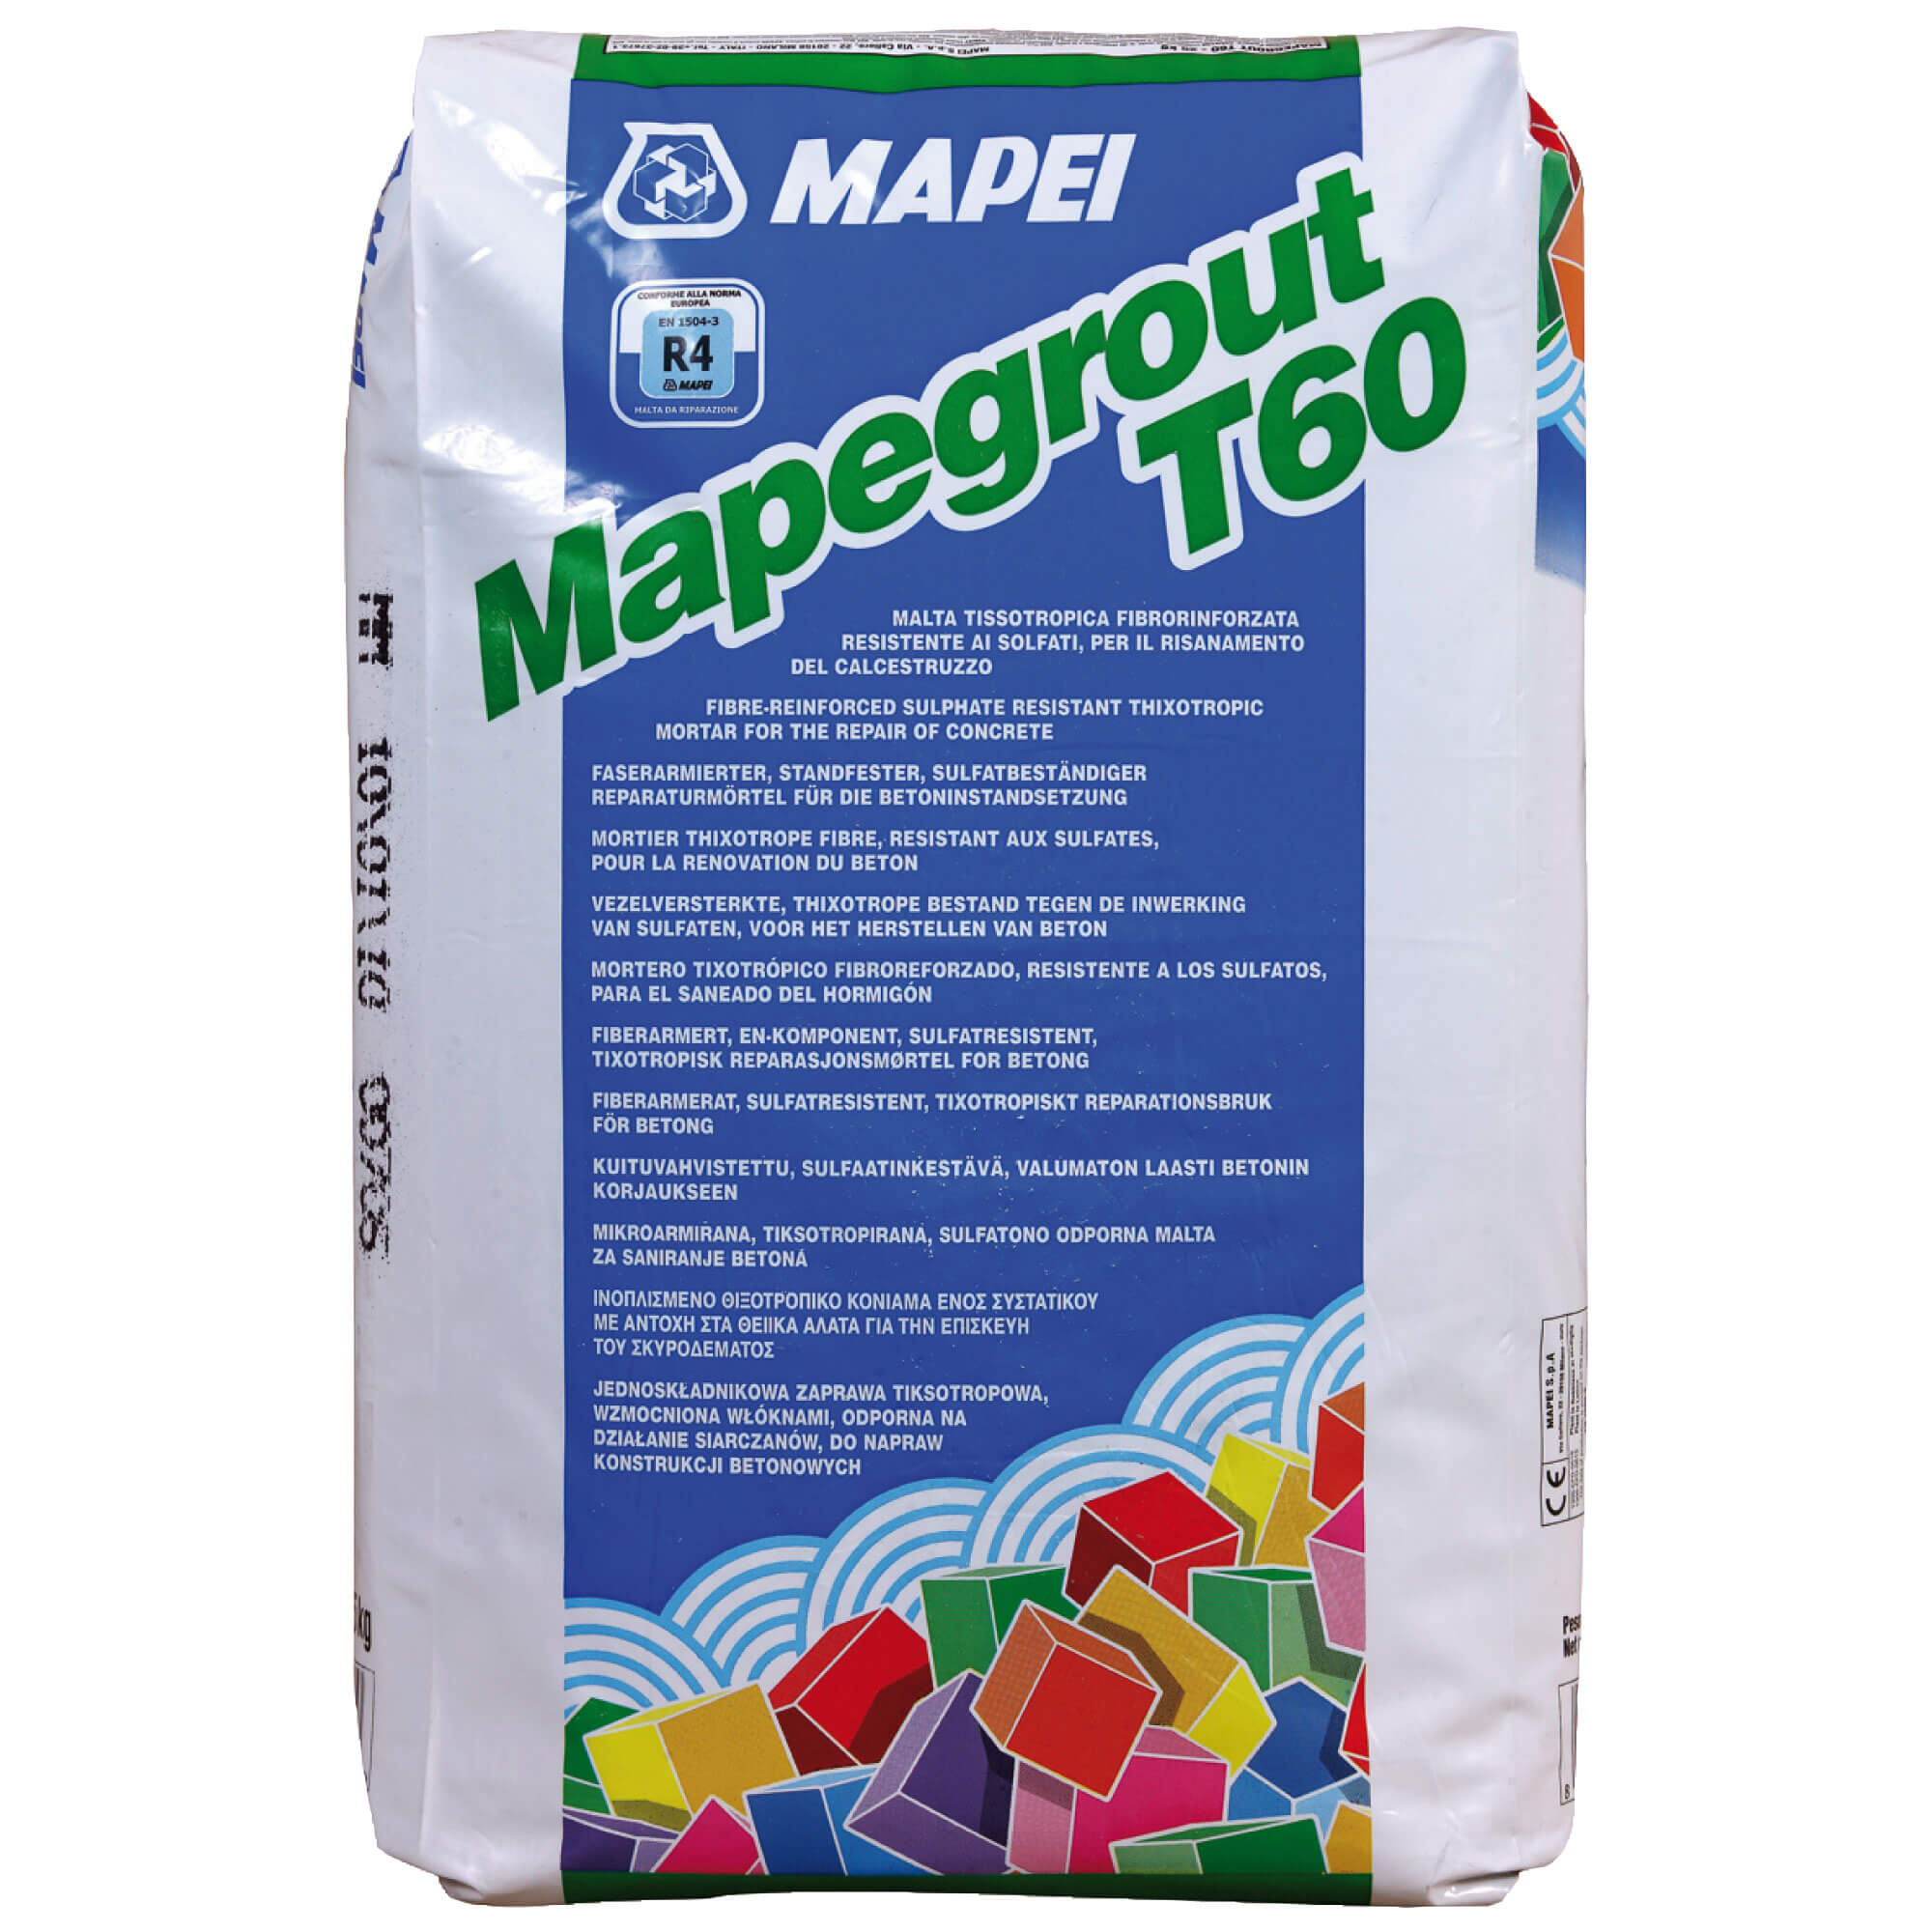 MAPEGROUT T60 CO